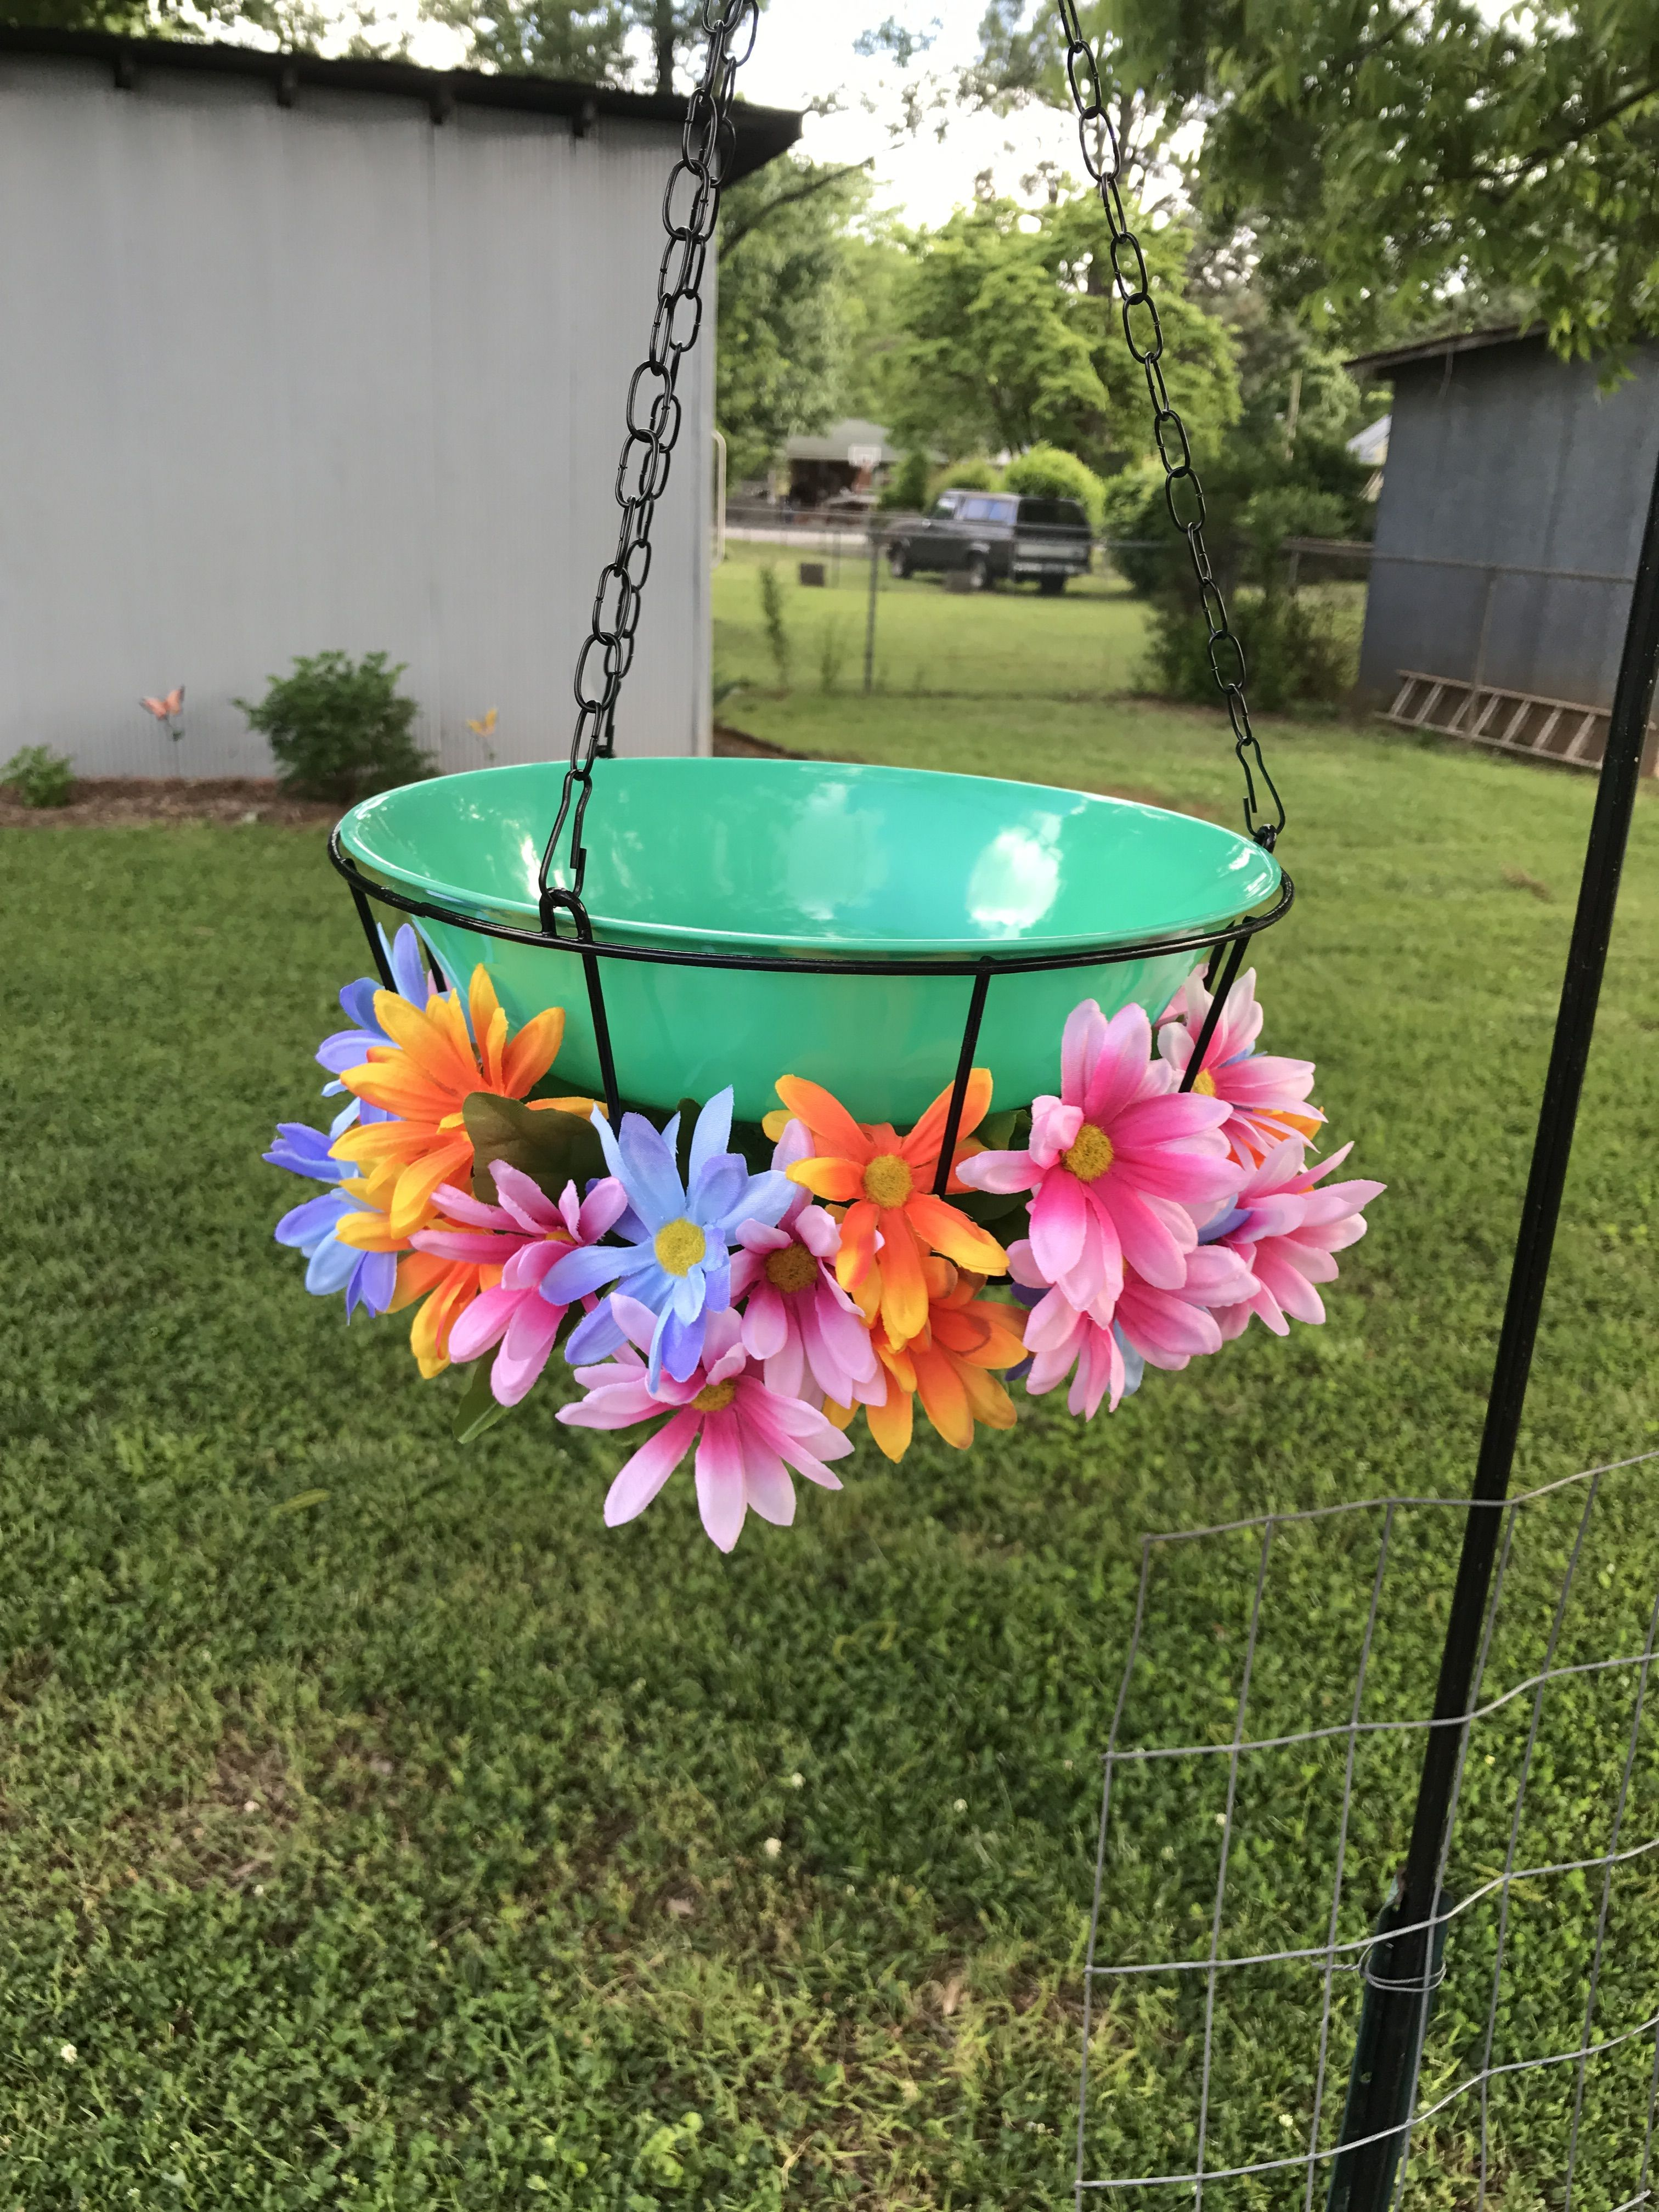 Diy Bird Bath It S Amazing What You Can Create From The